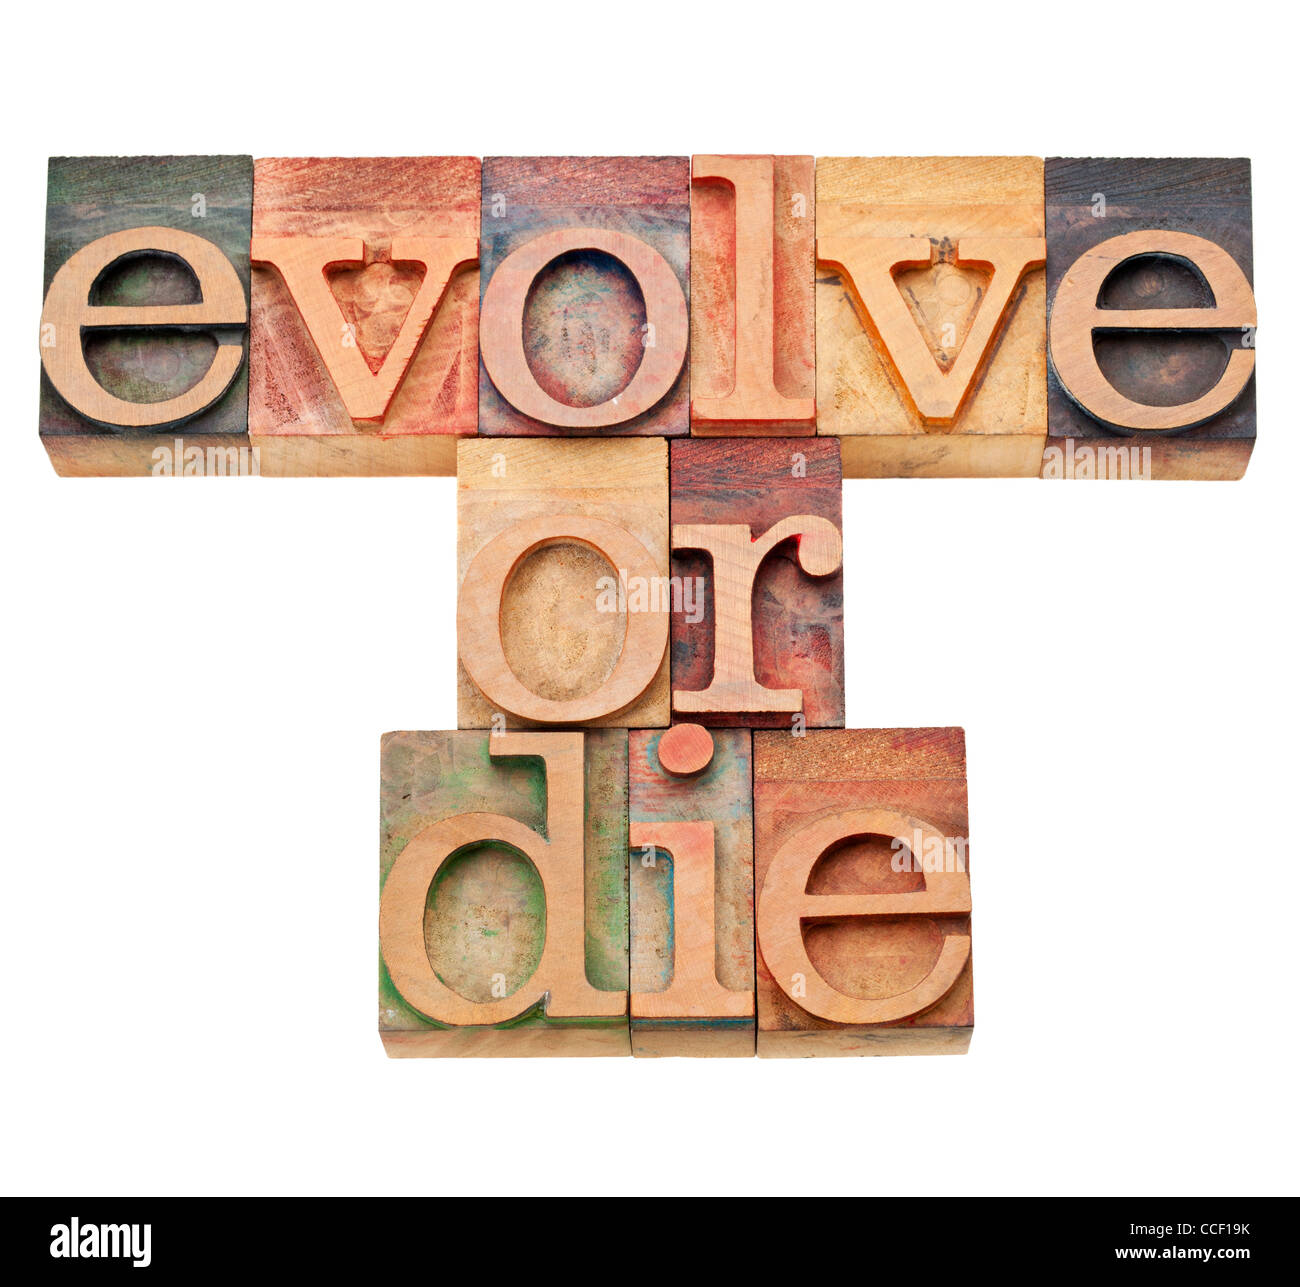 evolve or die - evolution or adaptation concept - isolated text in vintage wood letterpress type, stained by color - Stock Image